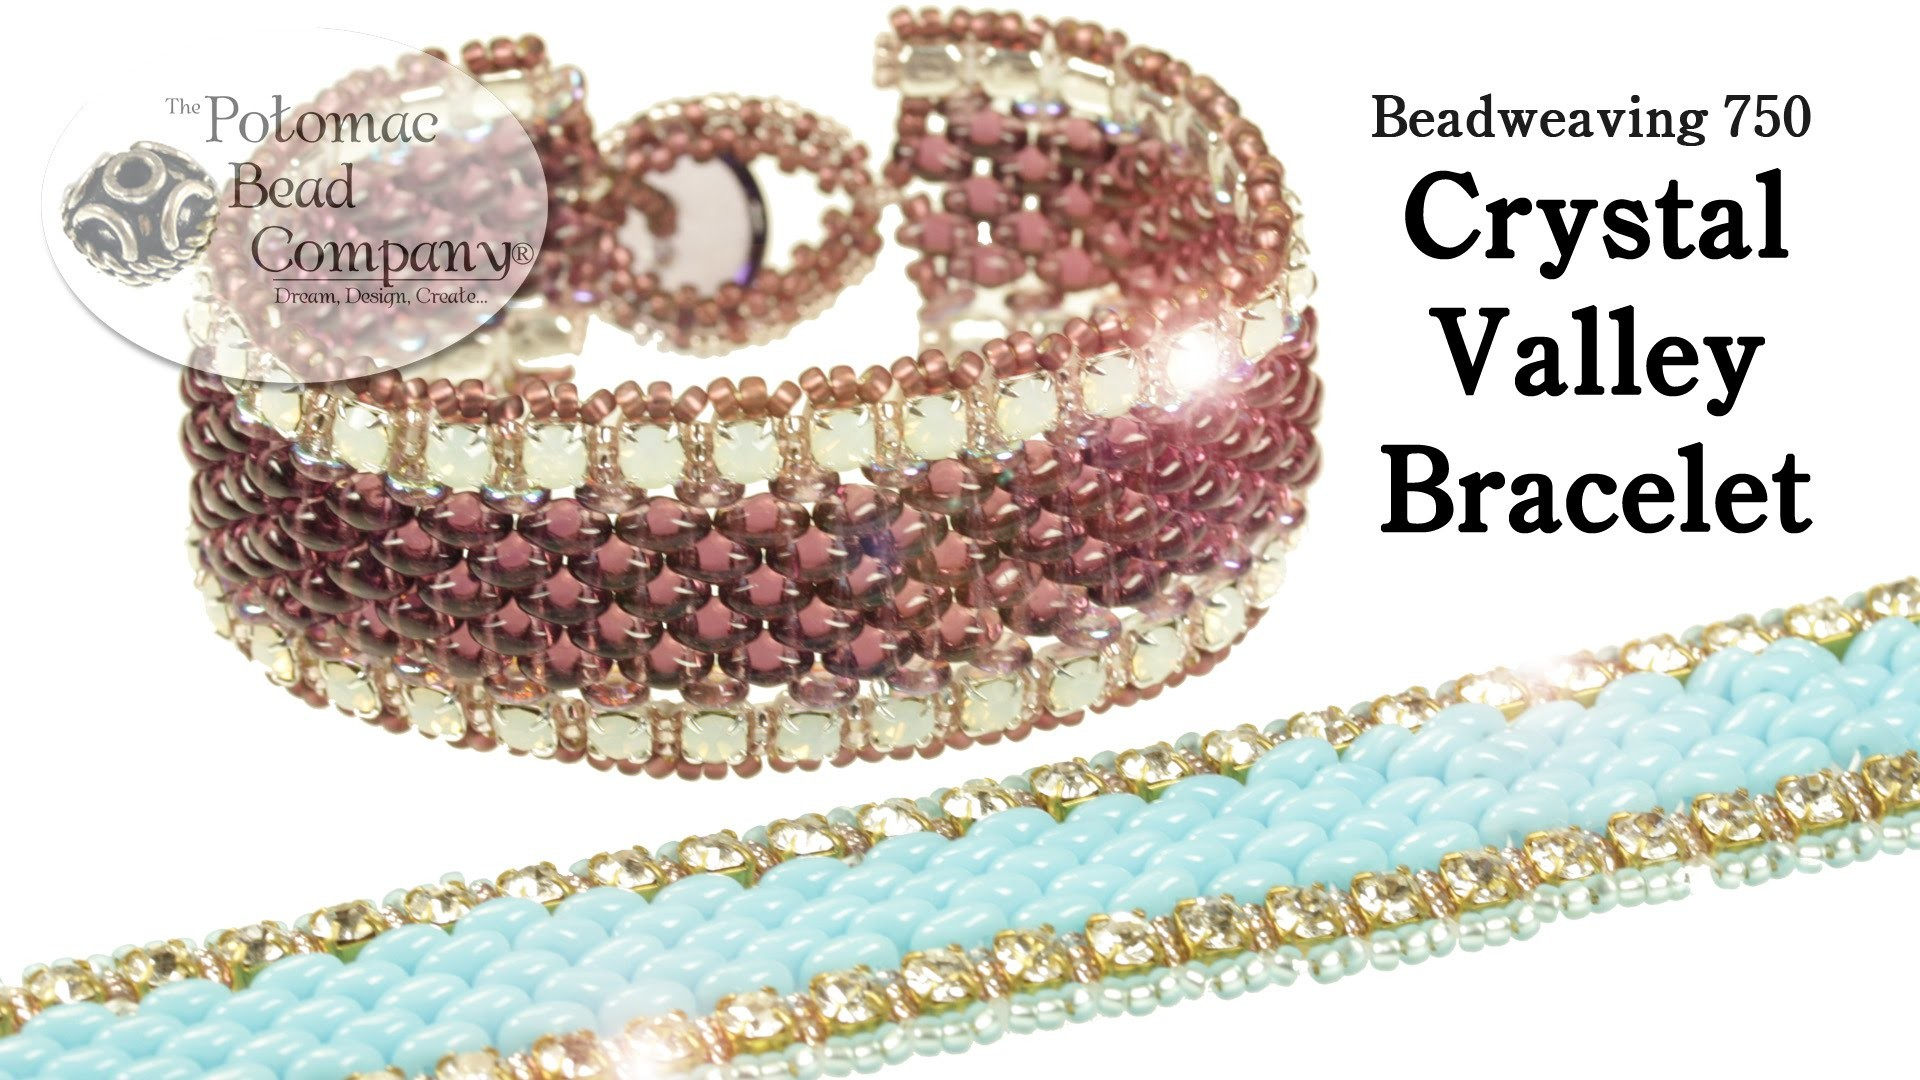 Crystal Valley Bracelet